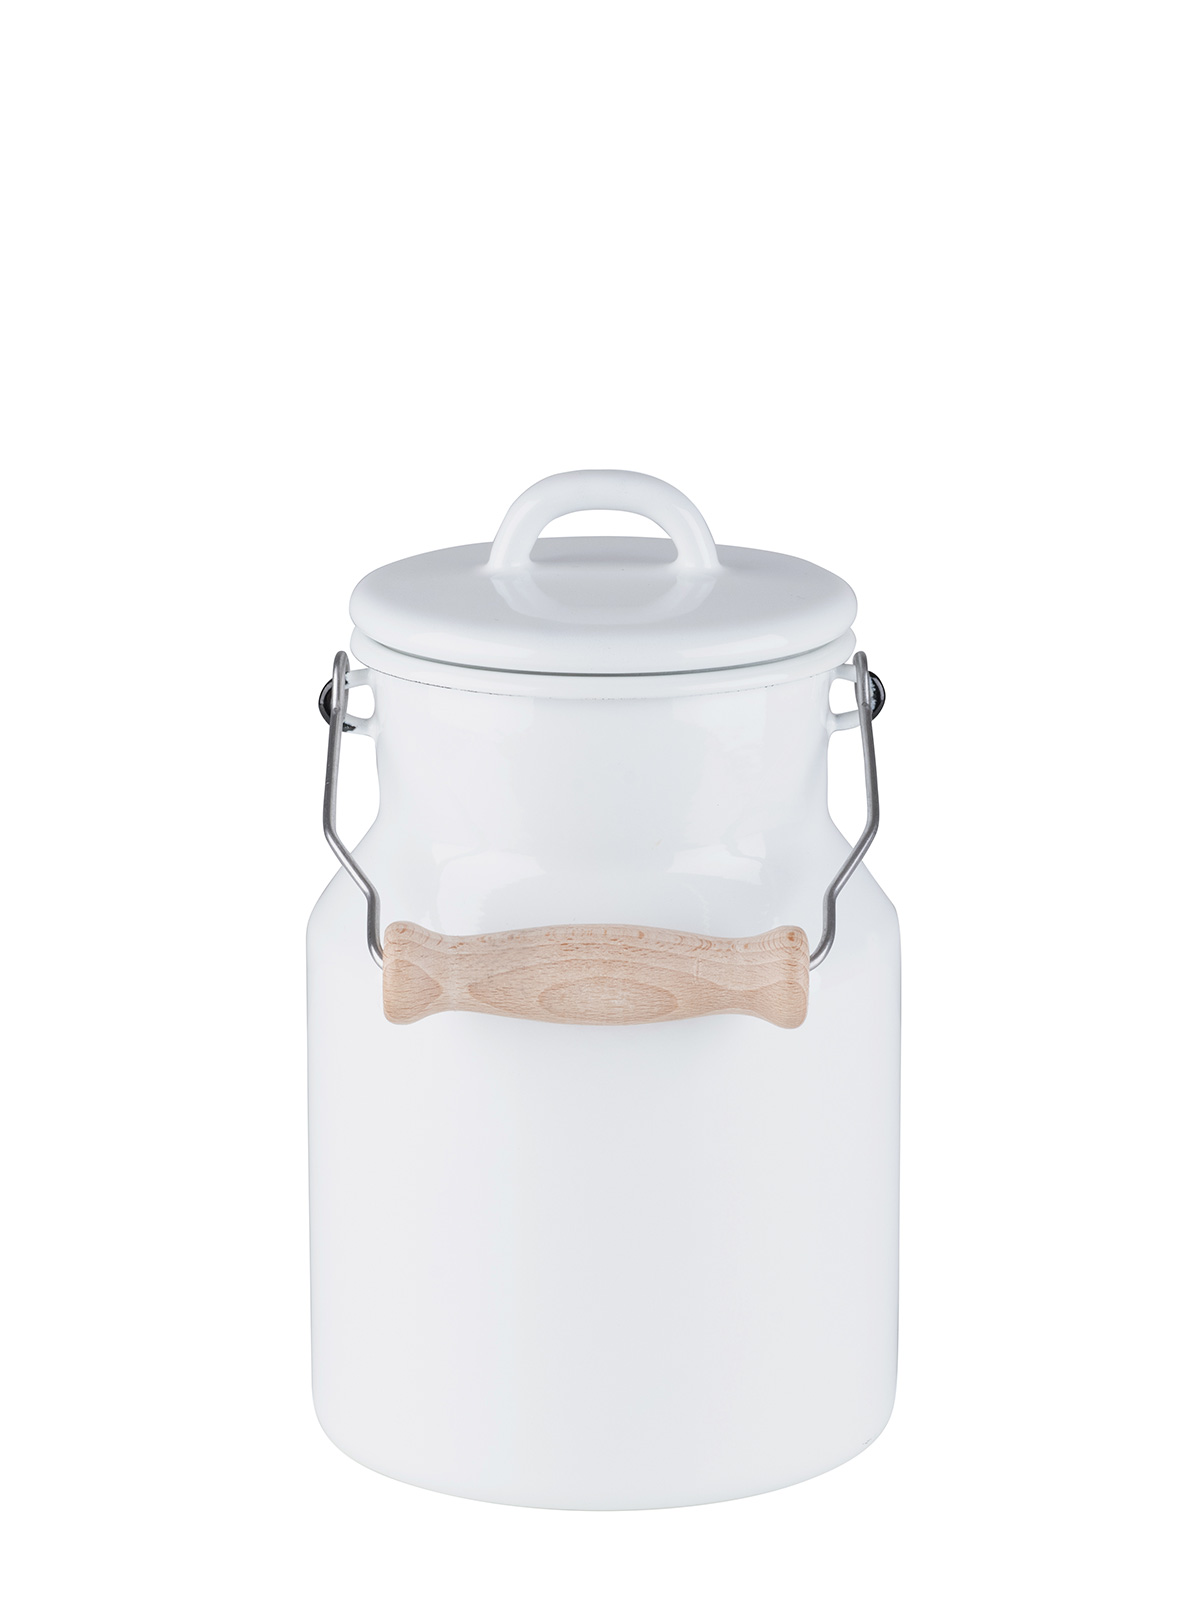 Grandma's Milkcan with enamel lid and wooden handle 1.5L 0457-33